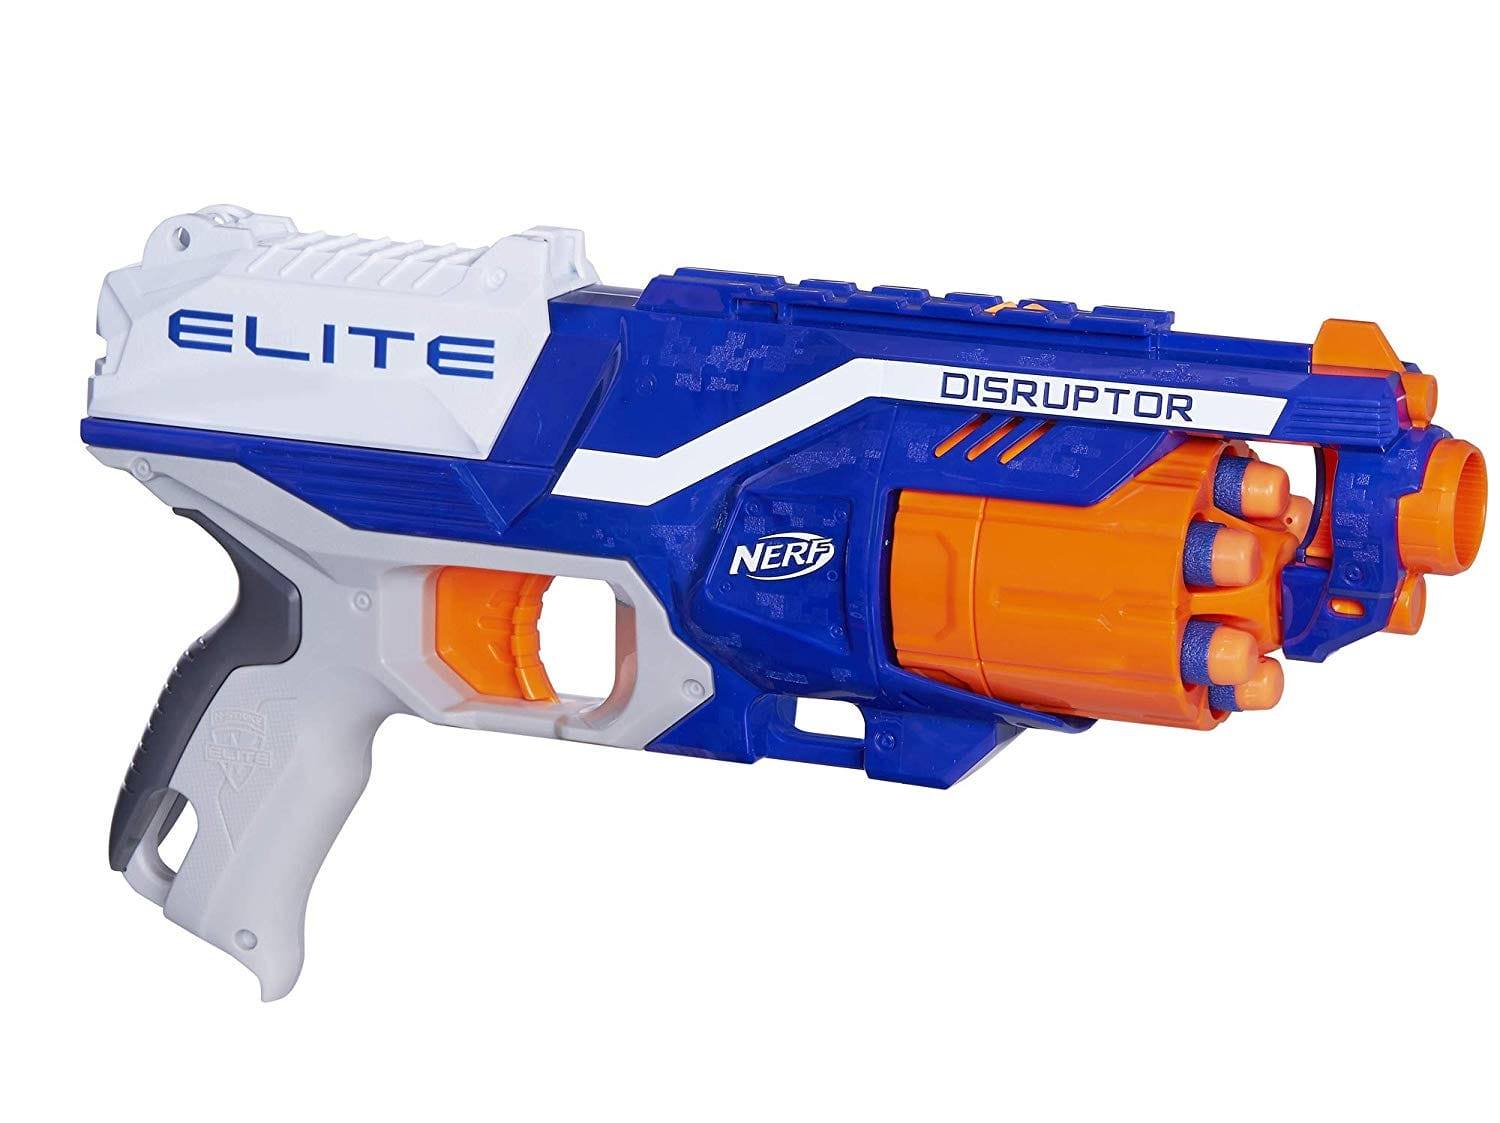 NERF N-Strike Elite Disruptor $7.50, NERF Megalodon N-Strike Mega Blaster w/ 20 Mega Whistler Darts $19.99, NERF Tactical Vest N-Strike Elite Series $16 & More at Amazon